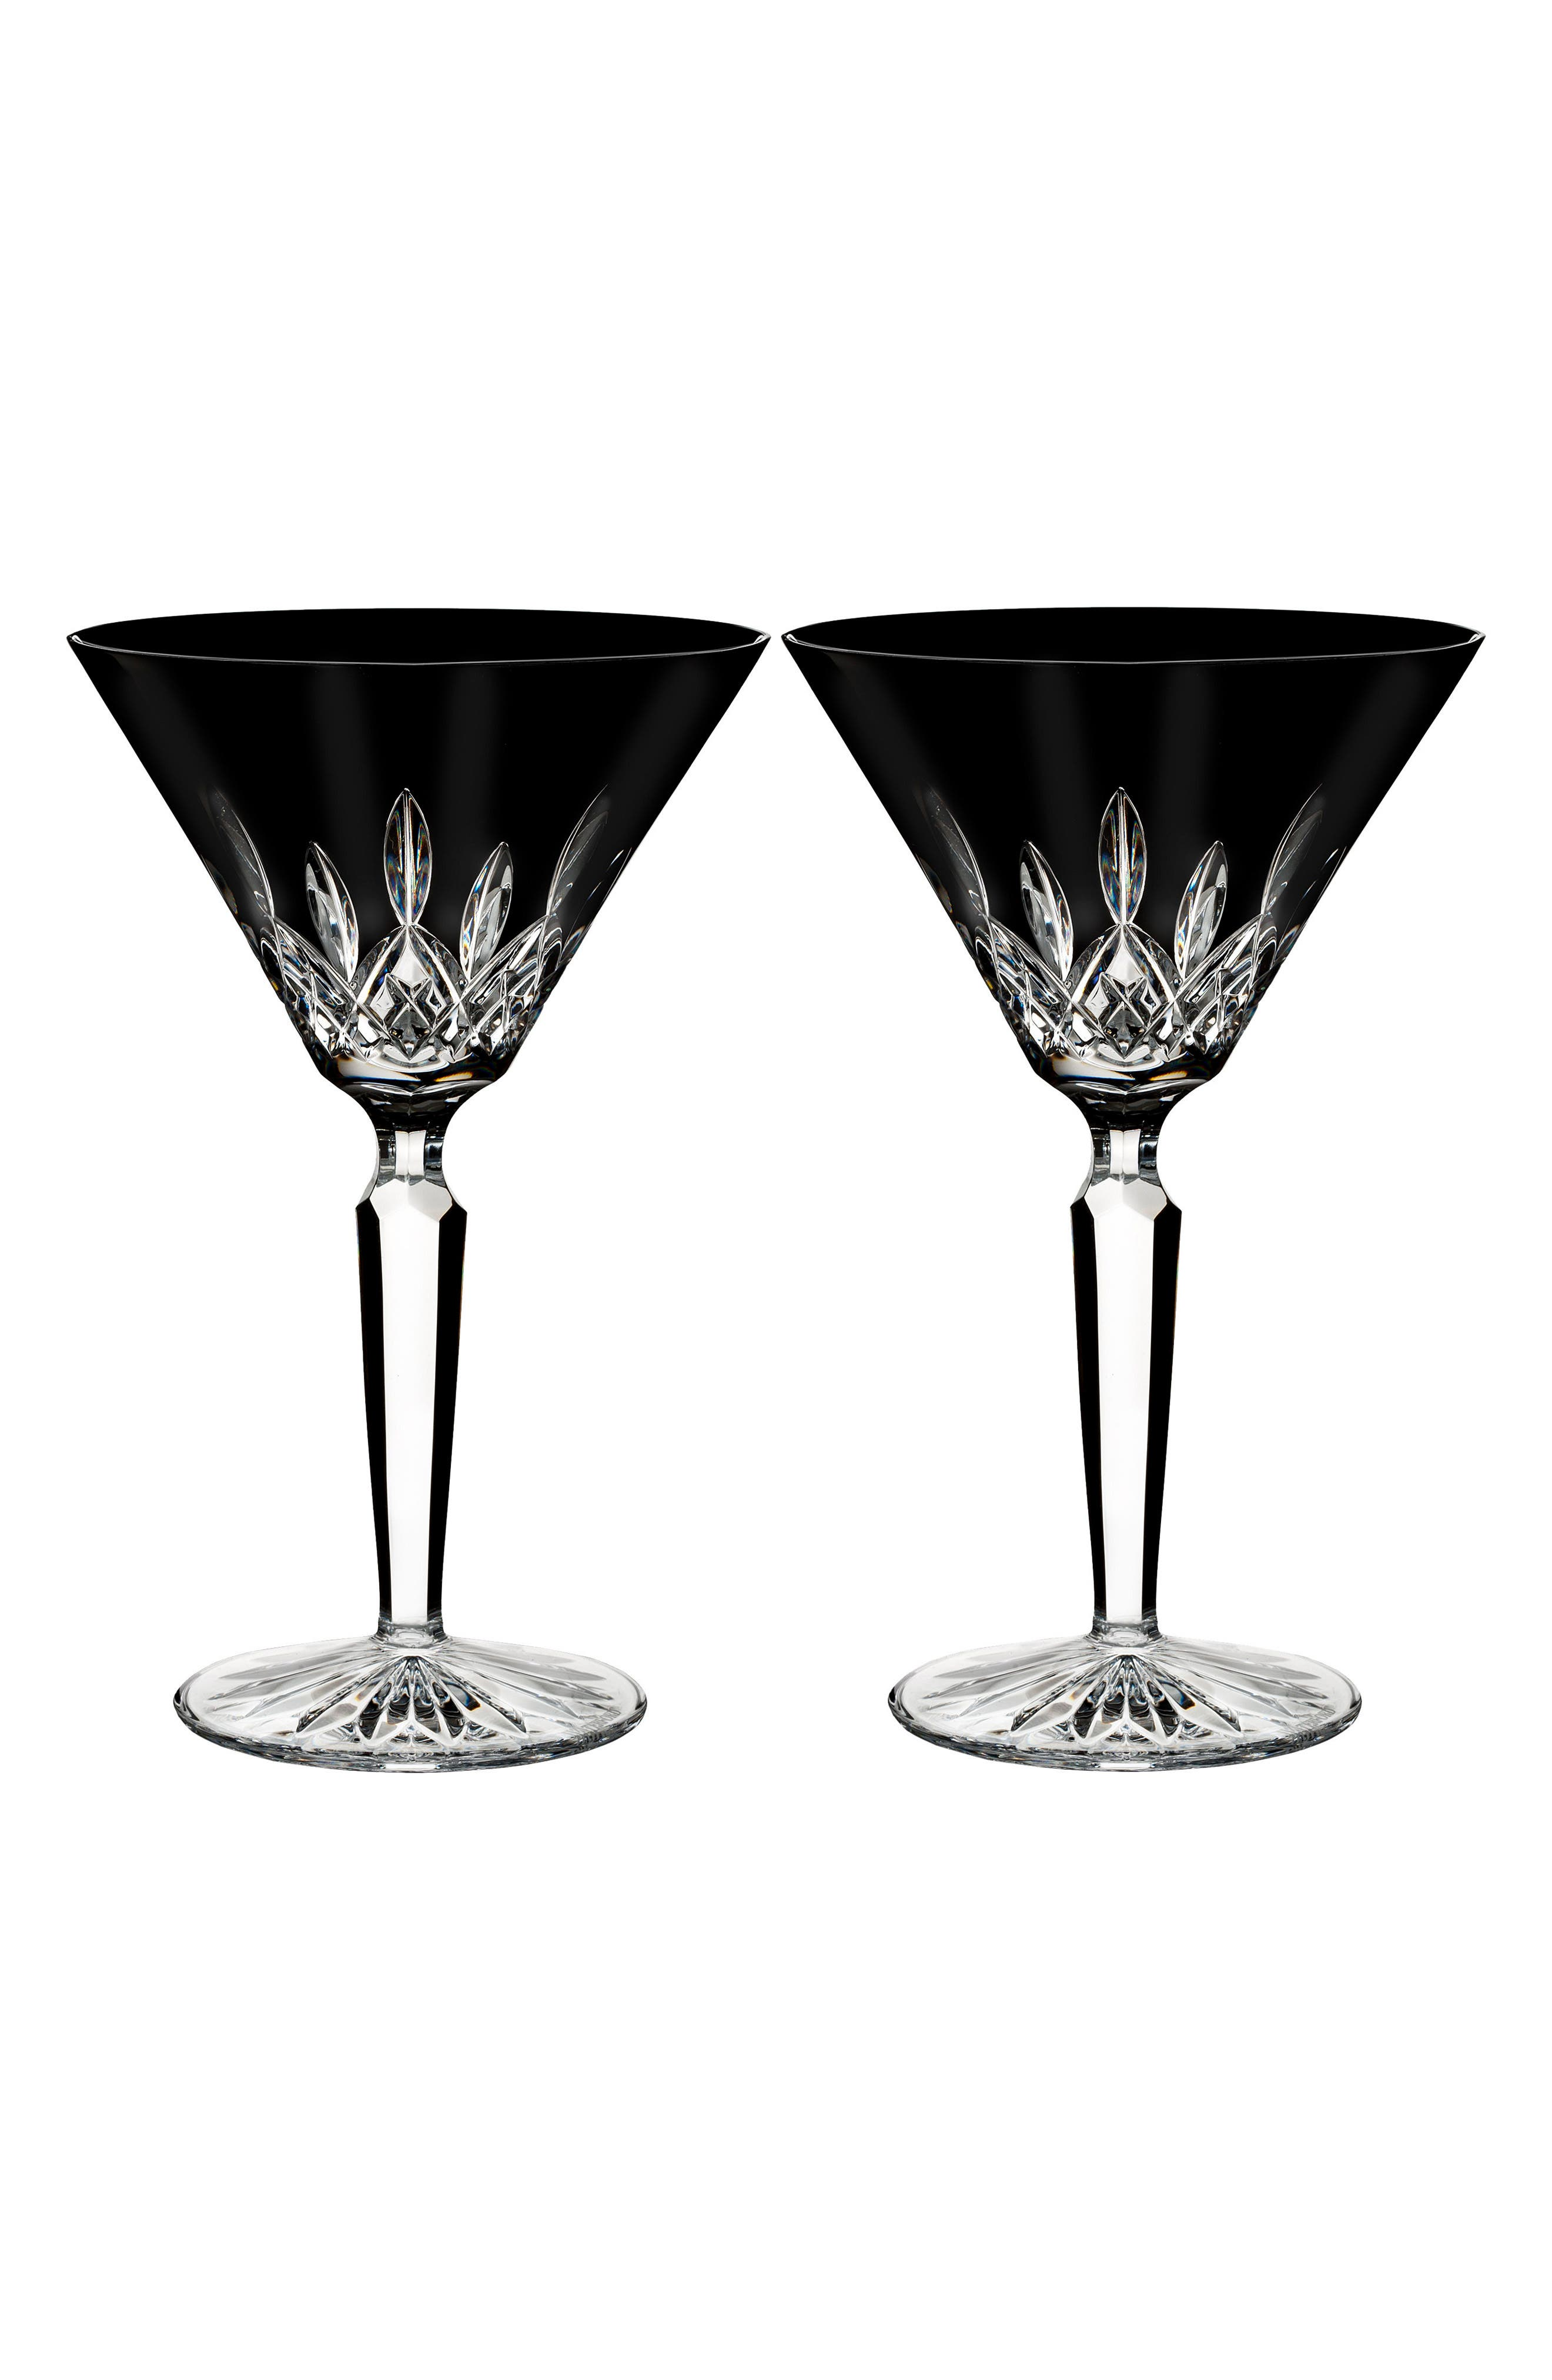 Lismore Diamond Set of 2 Black Lead Crystal Martini Glasses,                         Main,                         color, Crystal